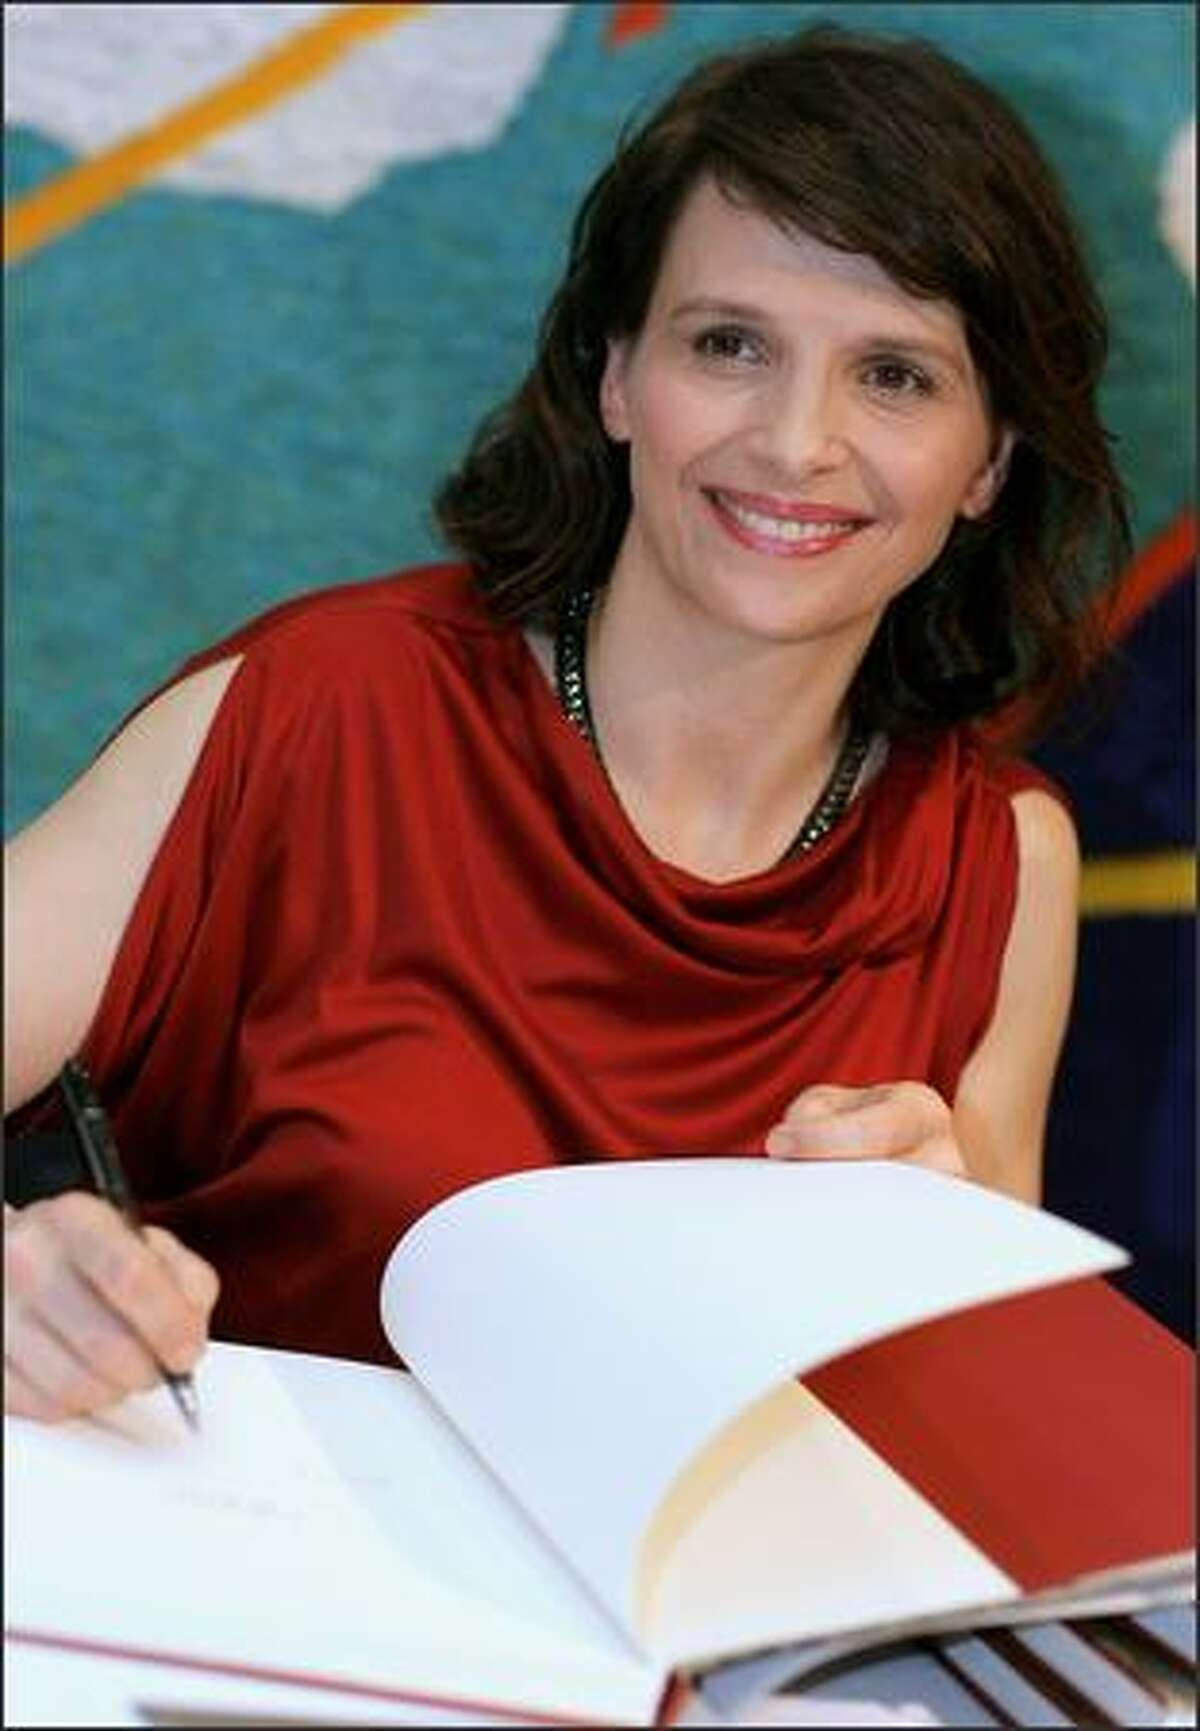 Actress Juliette Binoche signs autographs at the official launch of her latest book